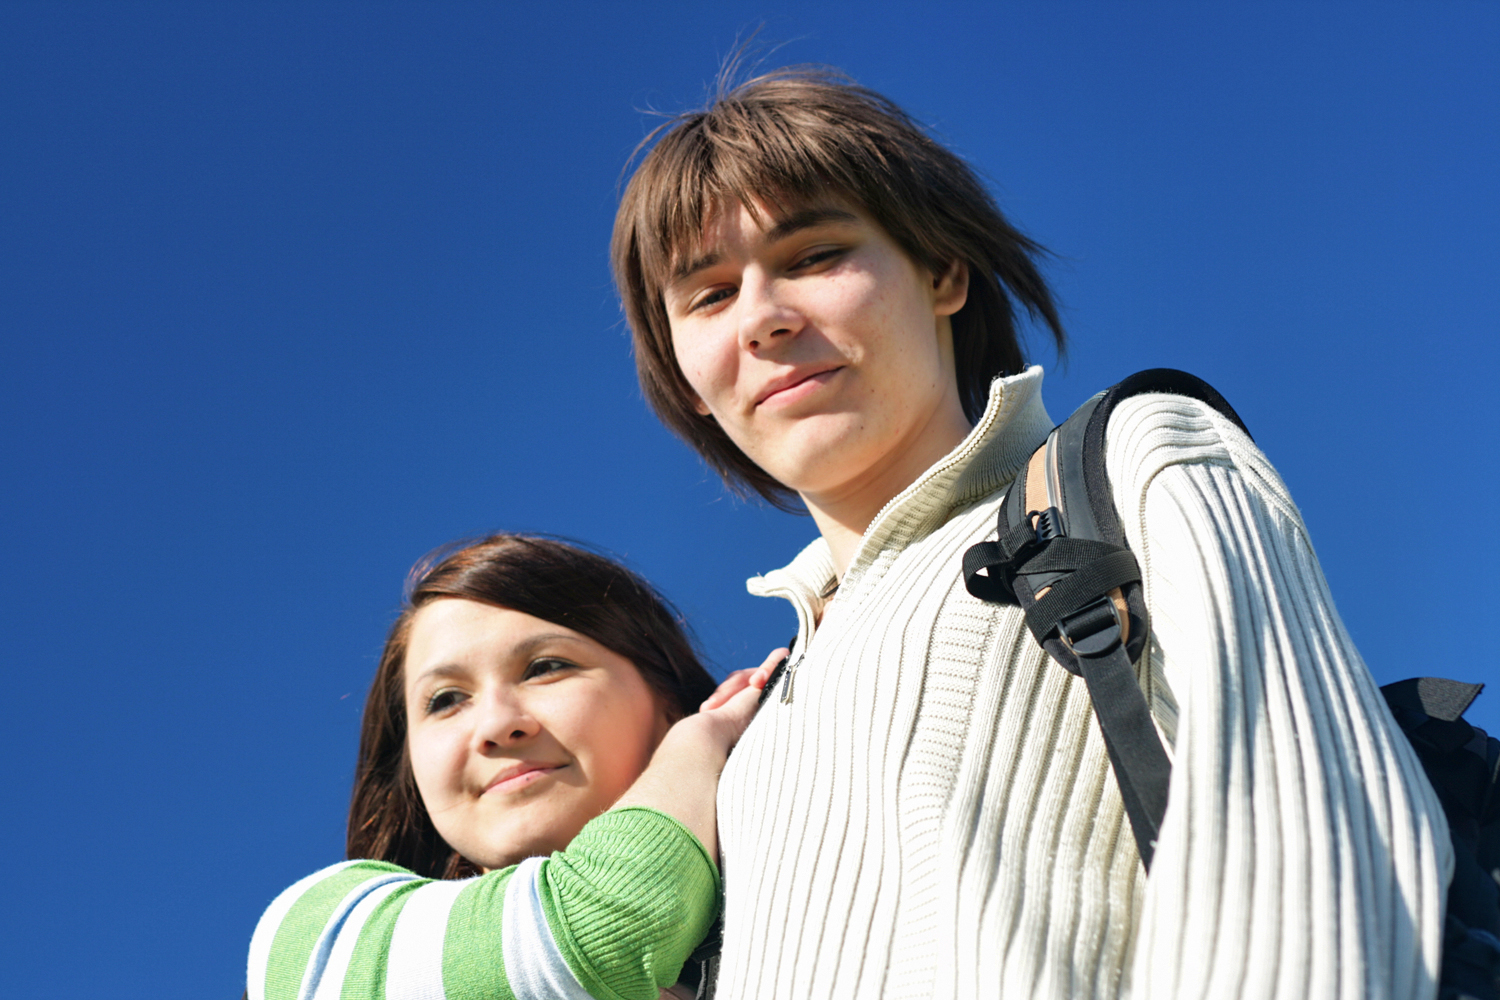 boy and girl, Blue, Male, Together, Portrait, HQ Photo